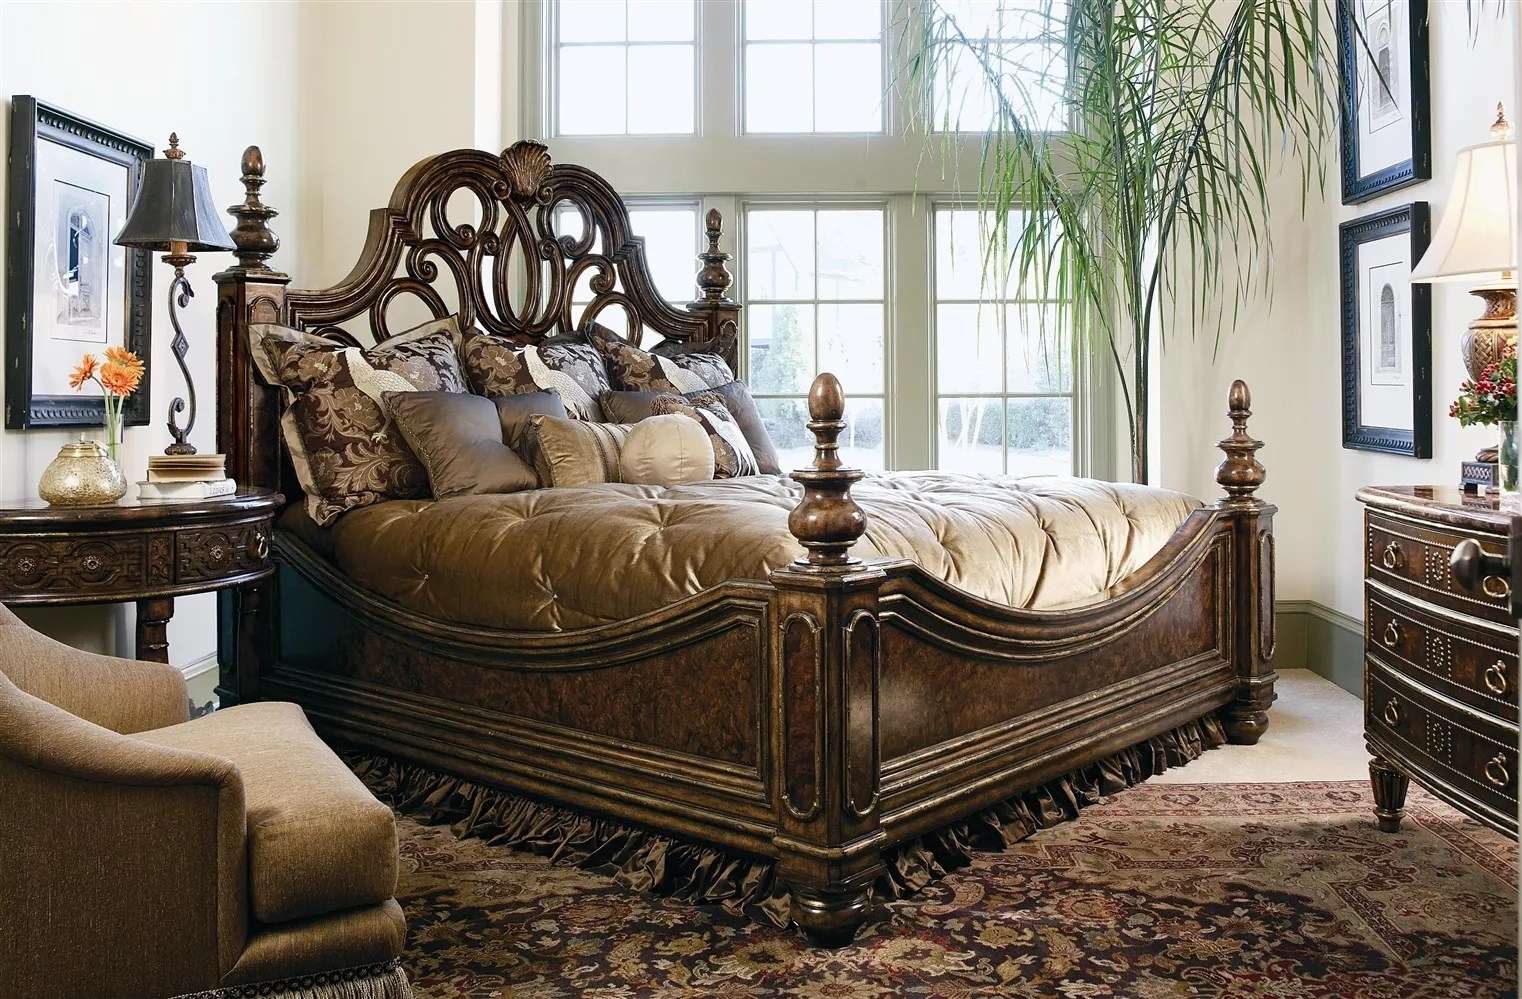 2 high end master bedroom set. manor home collection.